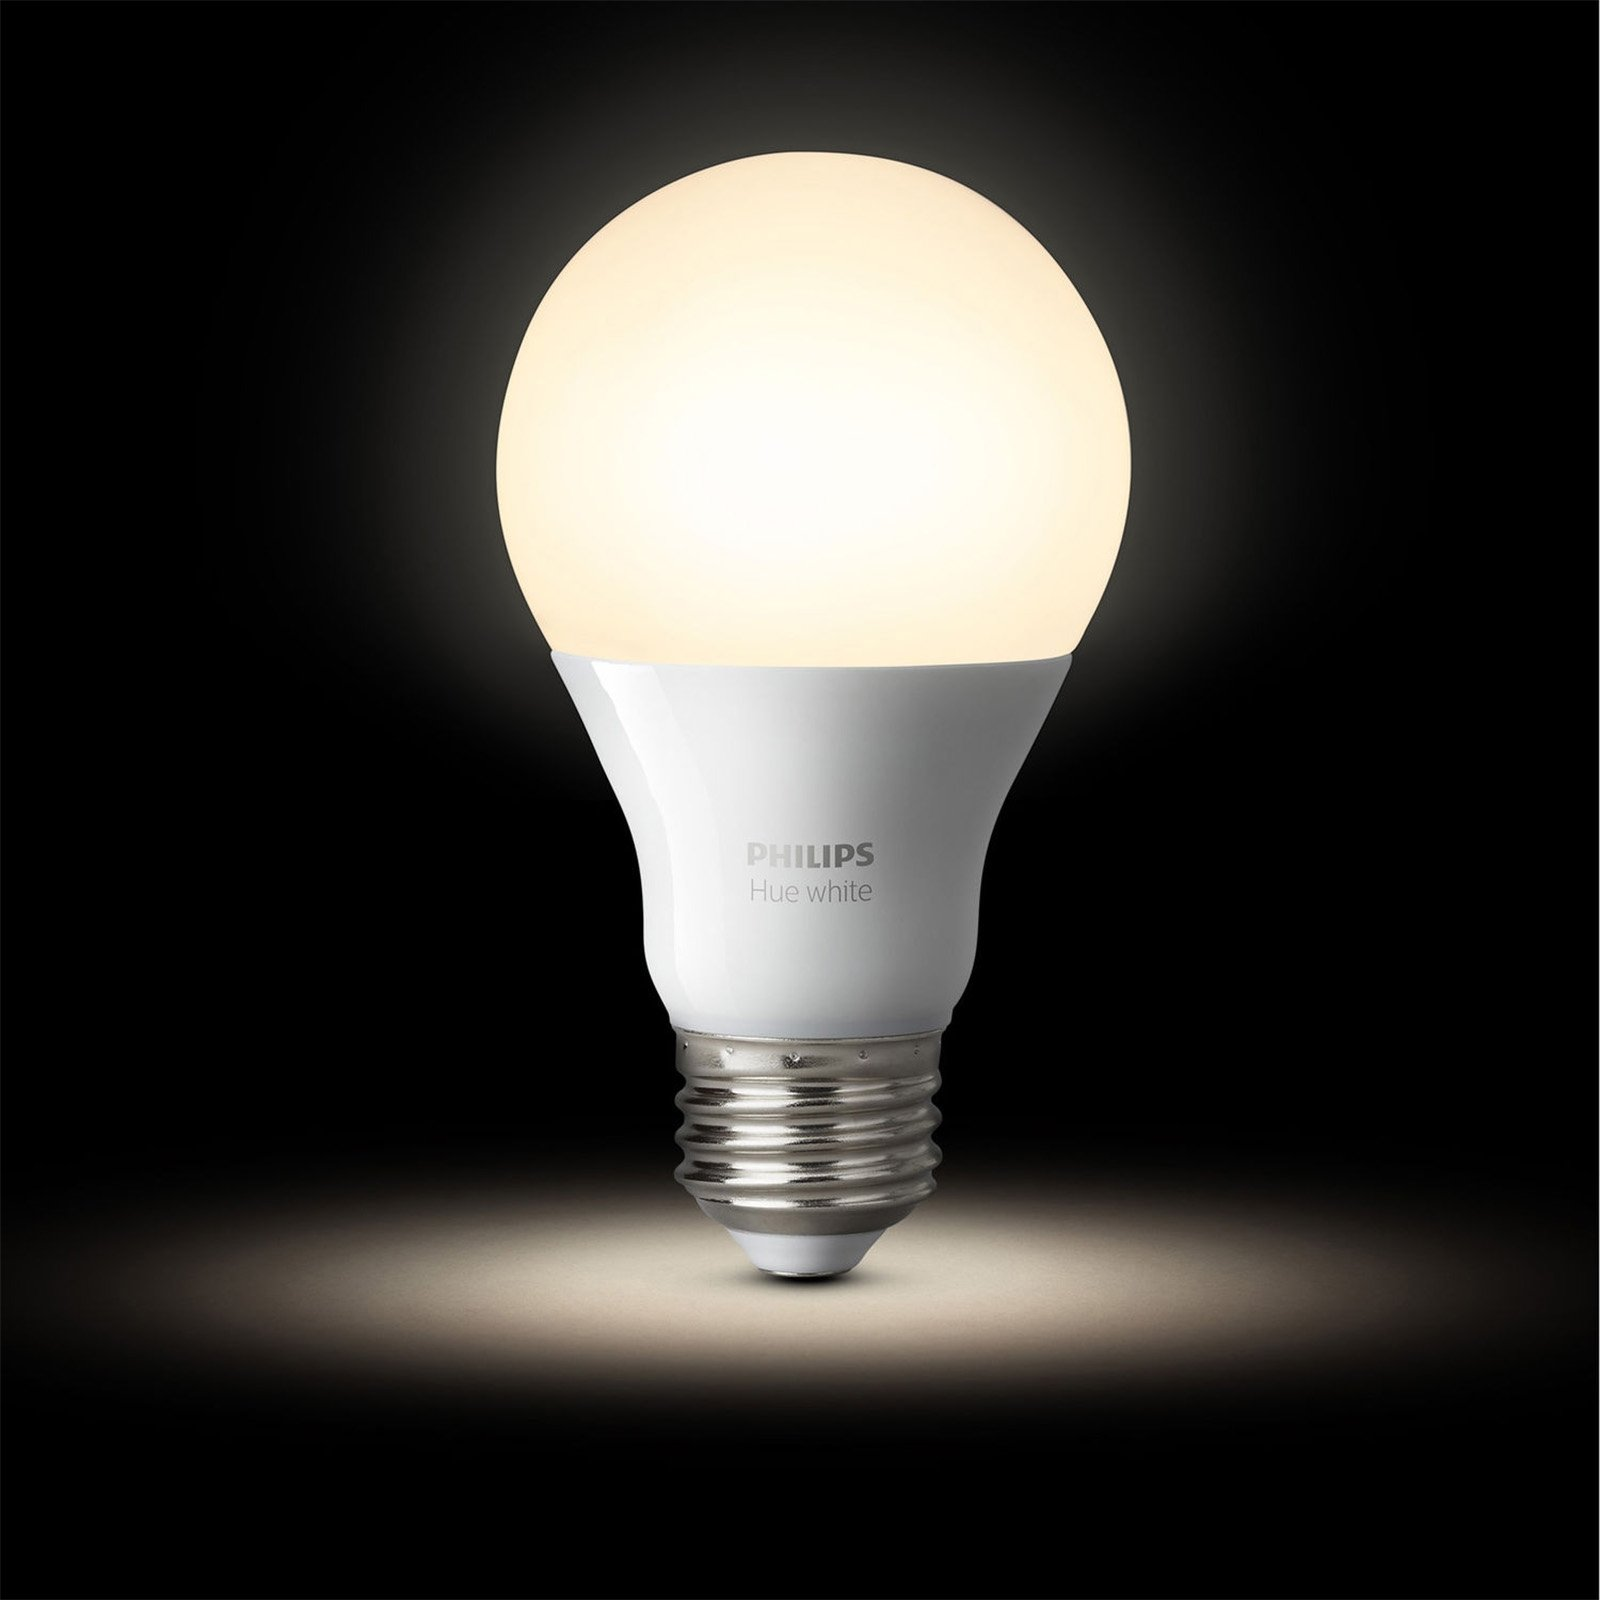 Philips Hue White A19 60W Equivalent Dimmable LED Smart Light Bulb Starter Kit (2 A19 60W White Bulbs and 1 Bridge, Works with Alexa, Apple HomeKit, and Google Assistant (Certified Refurbished) by Philips (Image #3)